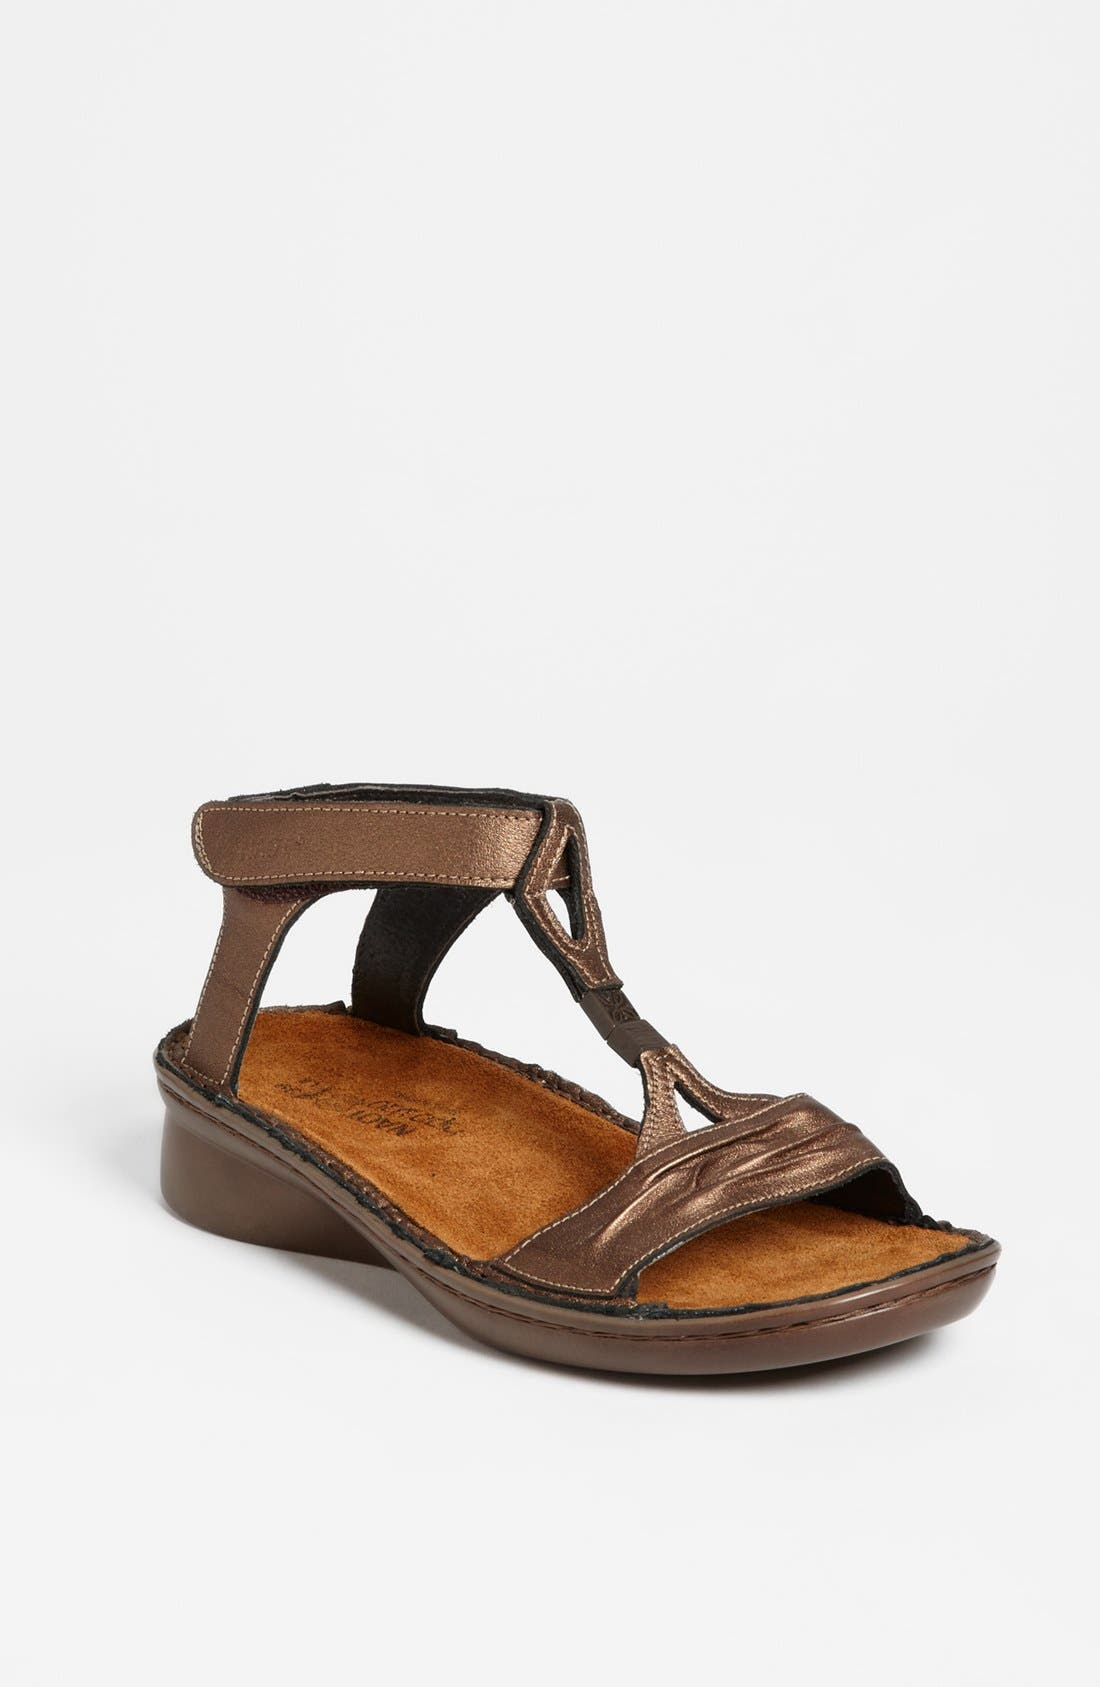 Alternate Image 1 Selected - Naot 'Cymbal' Sandal